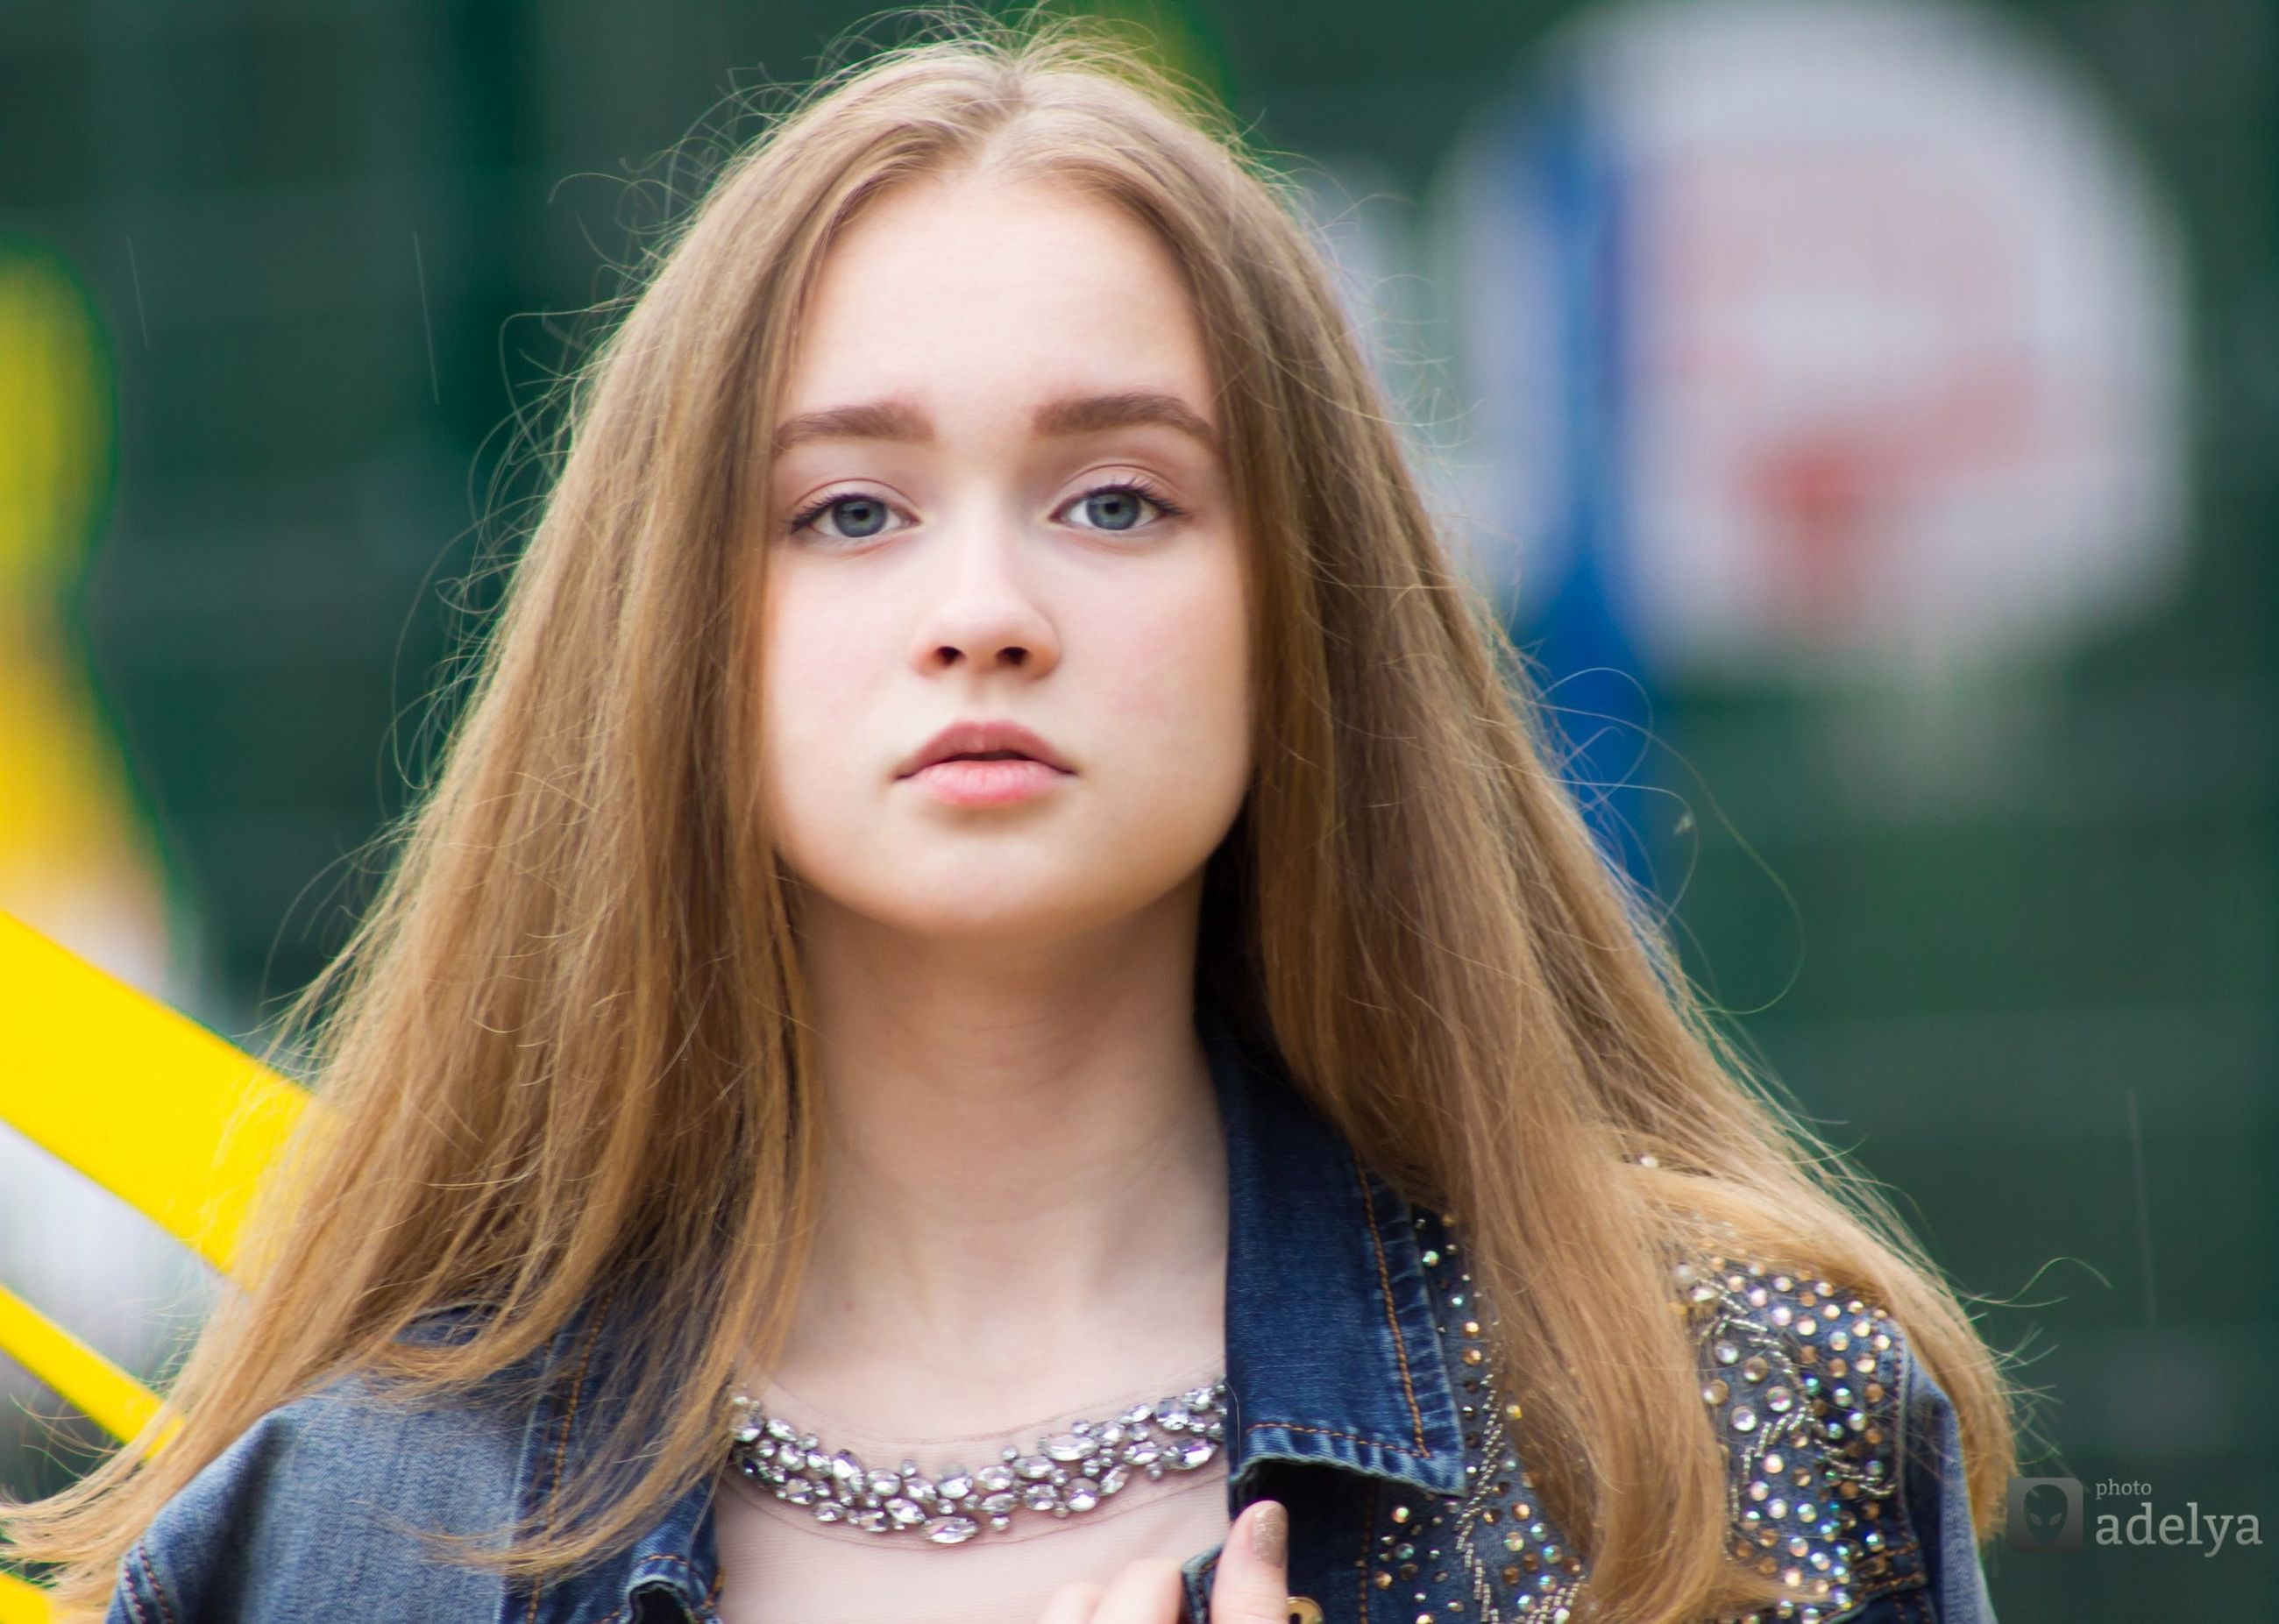 young women, long hair, young adult, blond hair, person, leisure activity, lifestyles, headshot, focus on foreground, beauty, front view, casual clothing, looking at camera, confidence, day, fashionable, beautiful people, straight hair